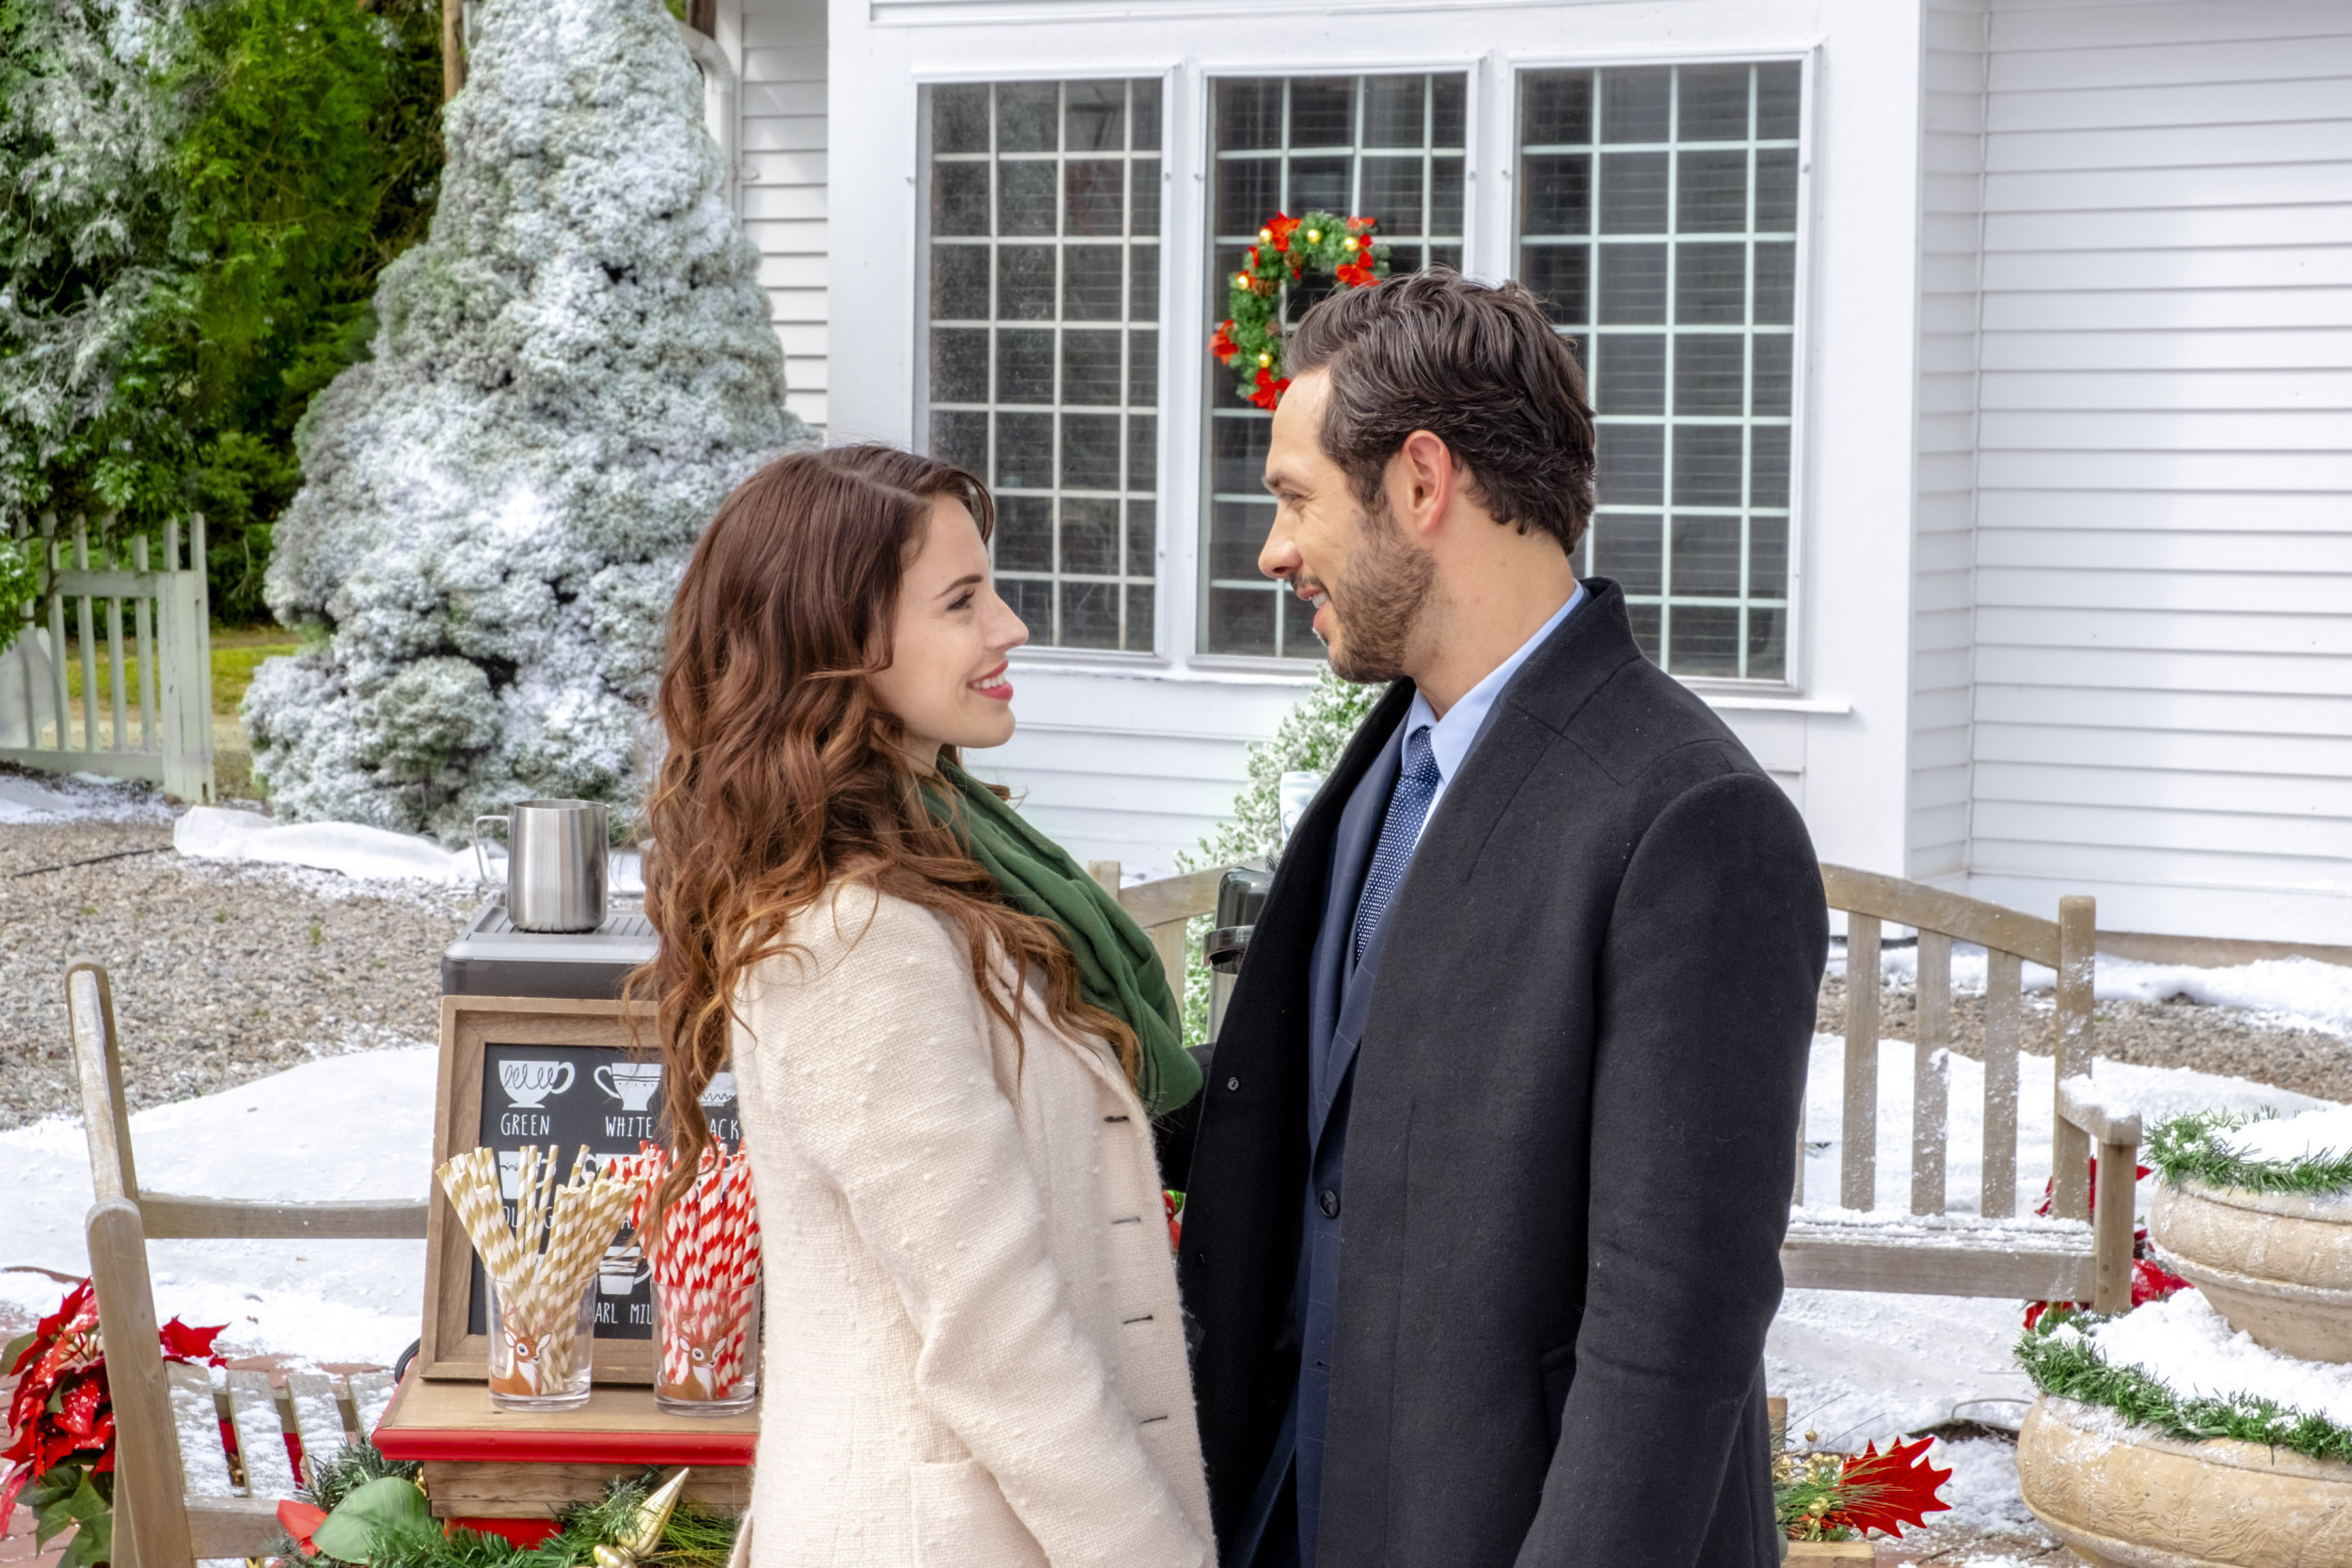 2019 Countdown To Christmas Preview   Countdown to Christmas 2019 | Hallmark Channel